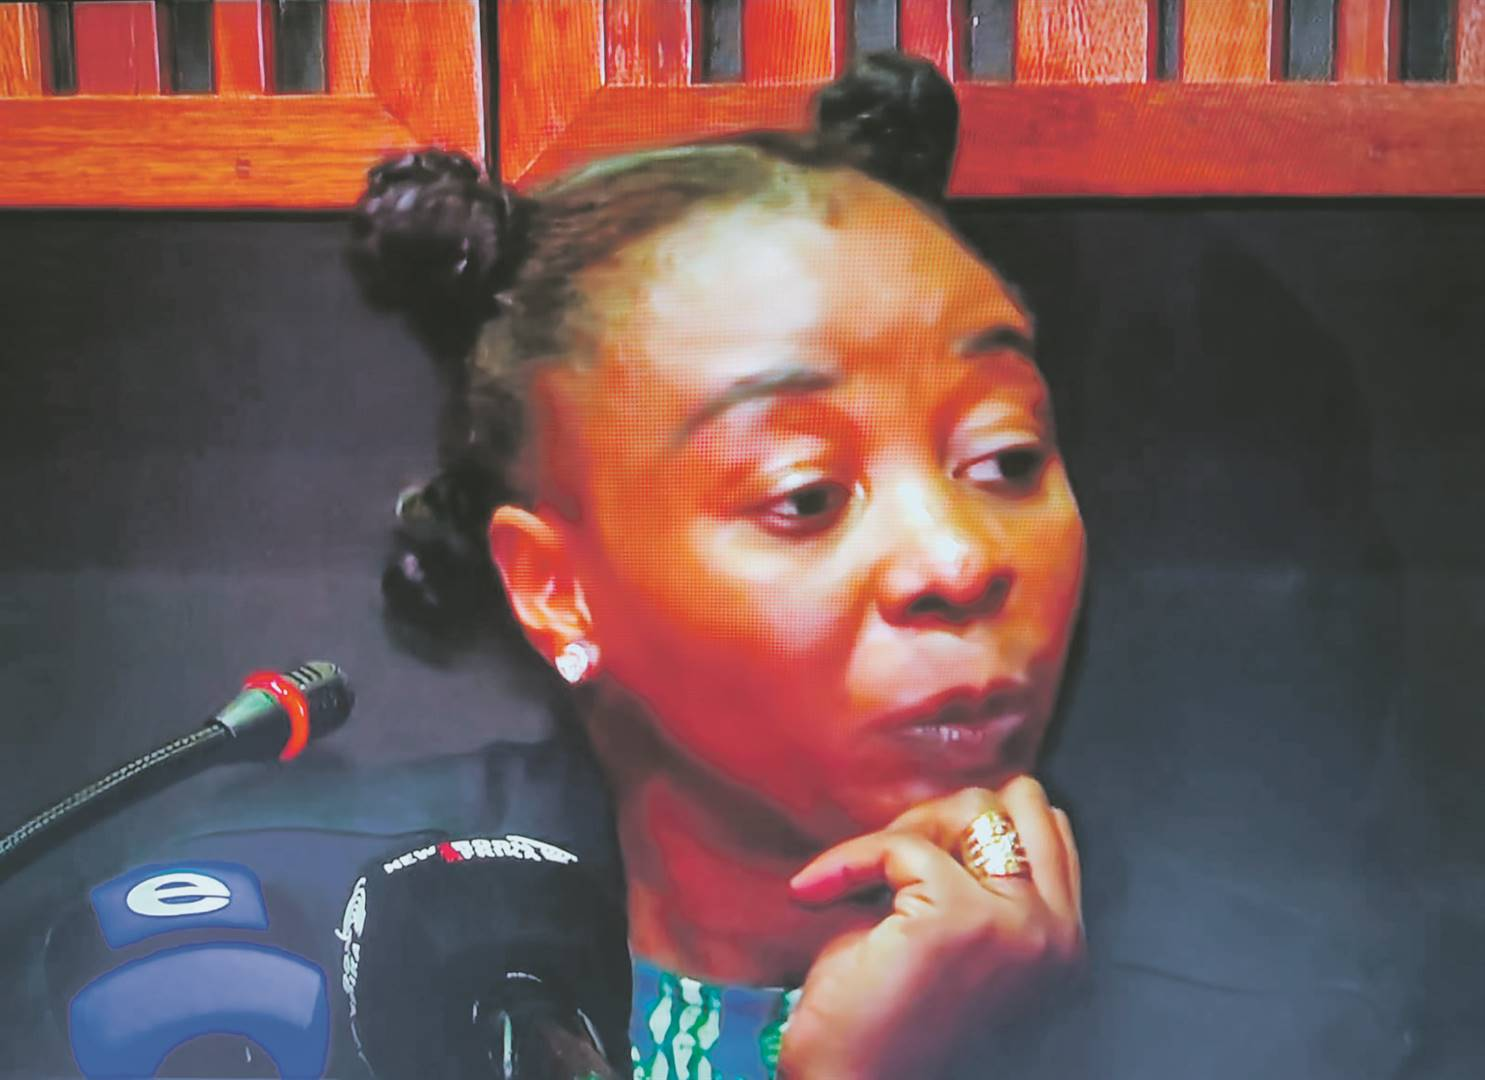 Rosemary Ndlovu: 'Who killed the victims?' judge asks convicted ex-cop - News24